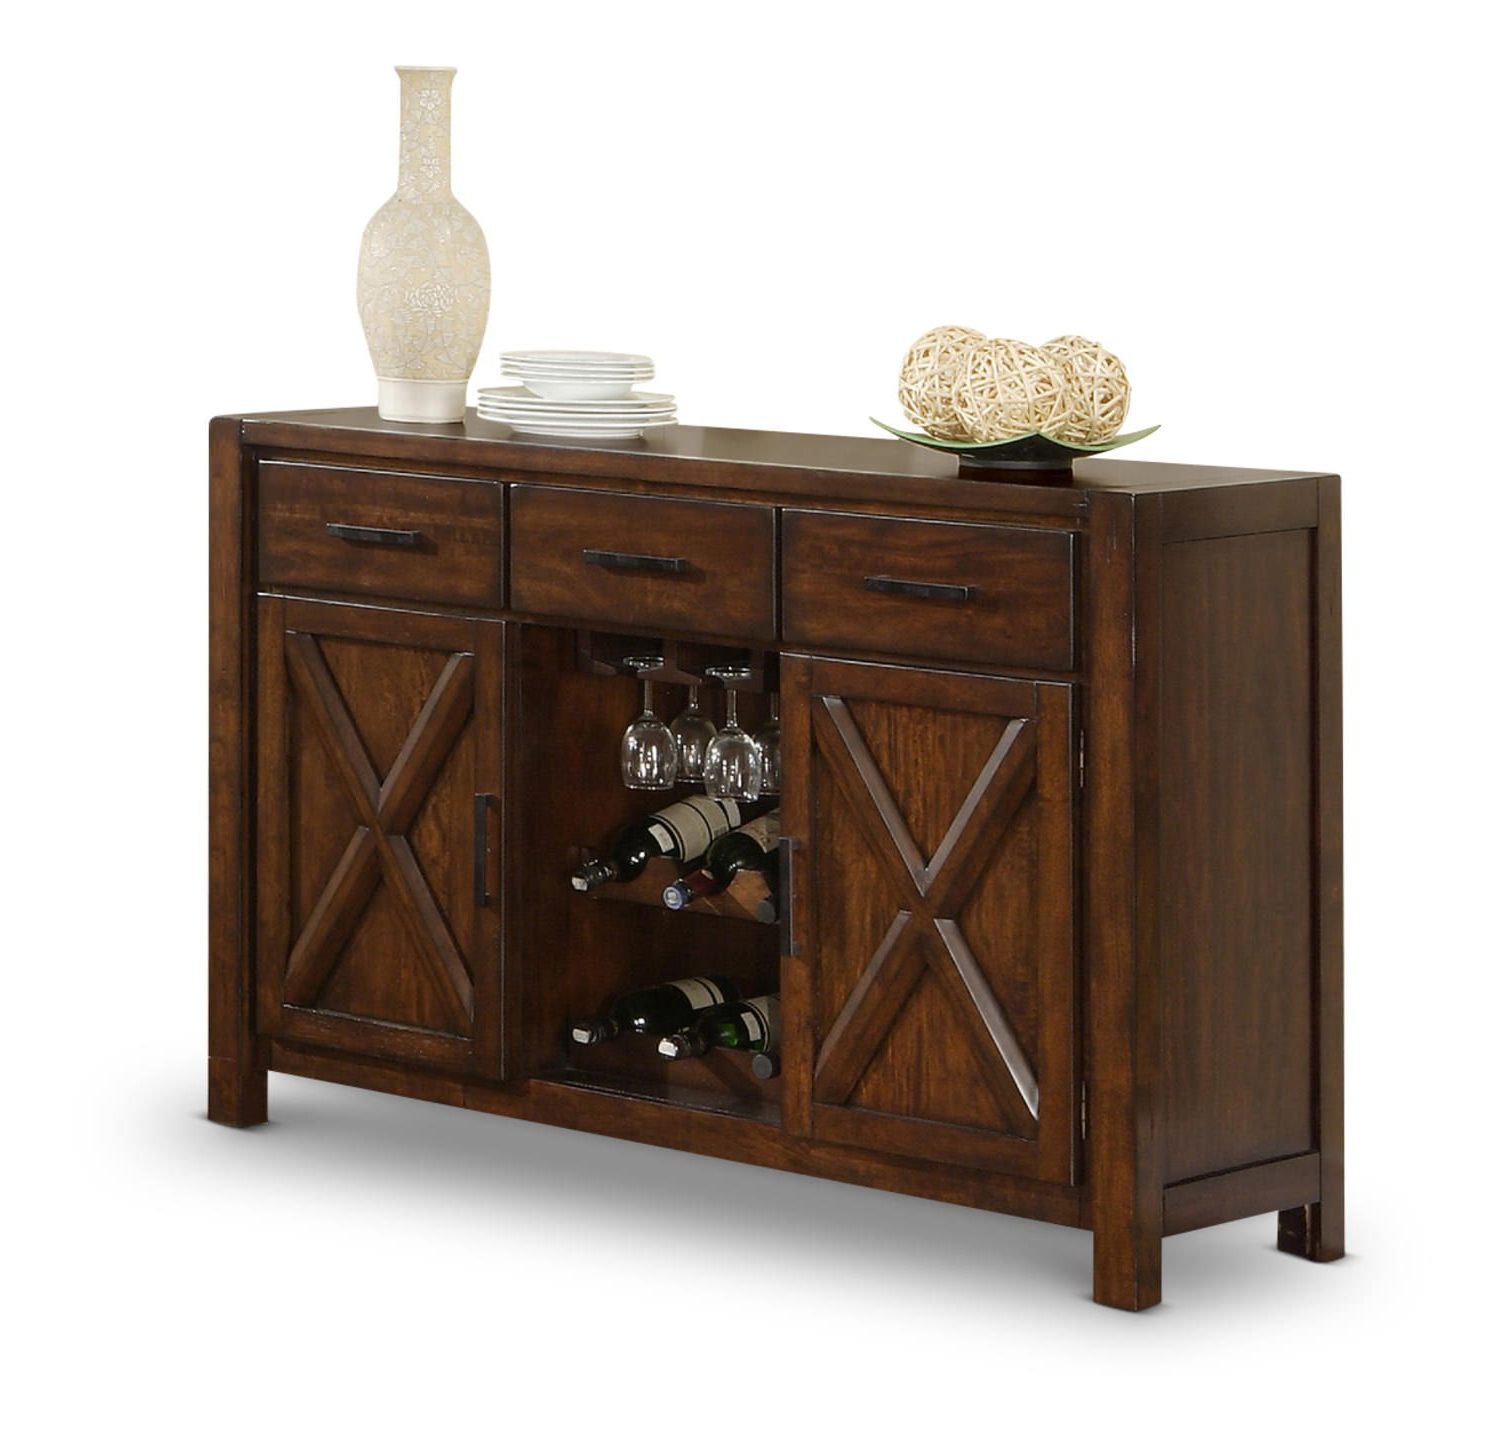 Sideboard Within Most Current Alegre Sideboards (Gallery 11 of 20)